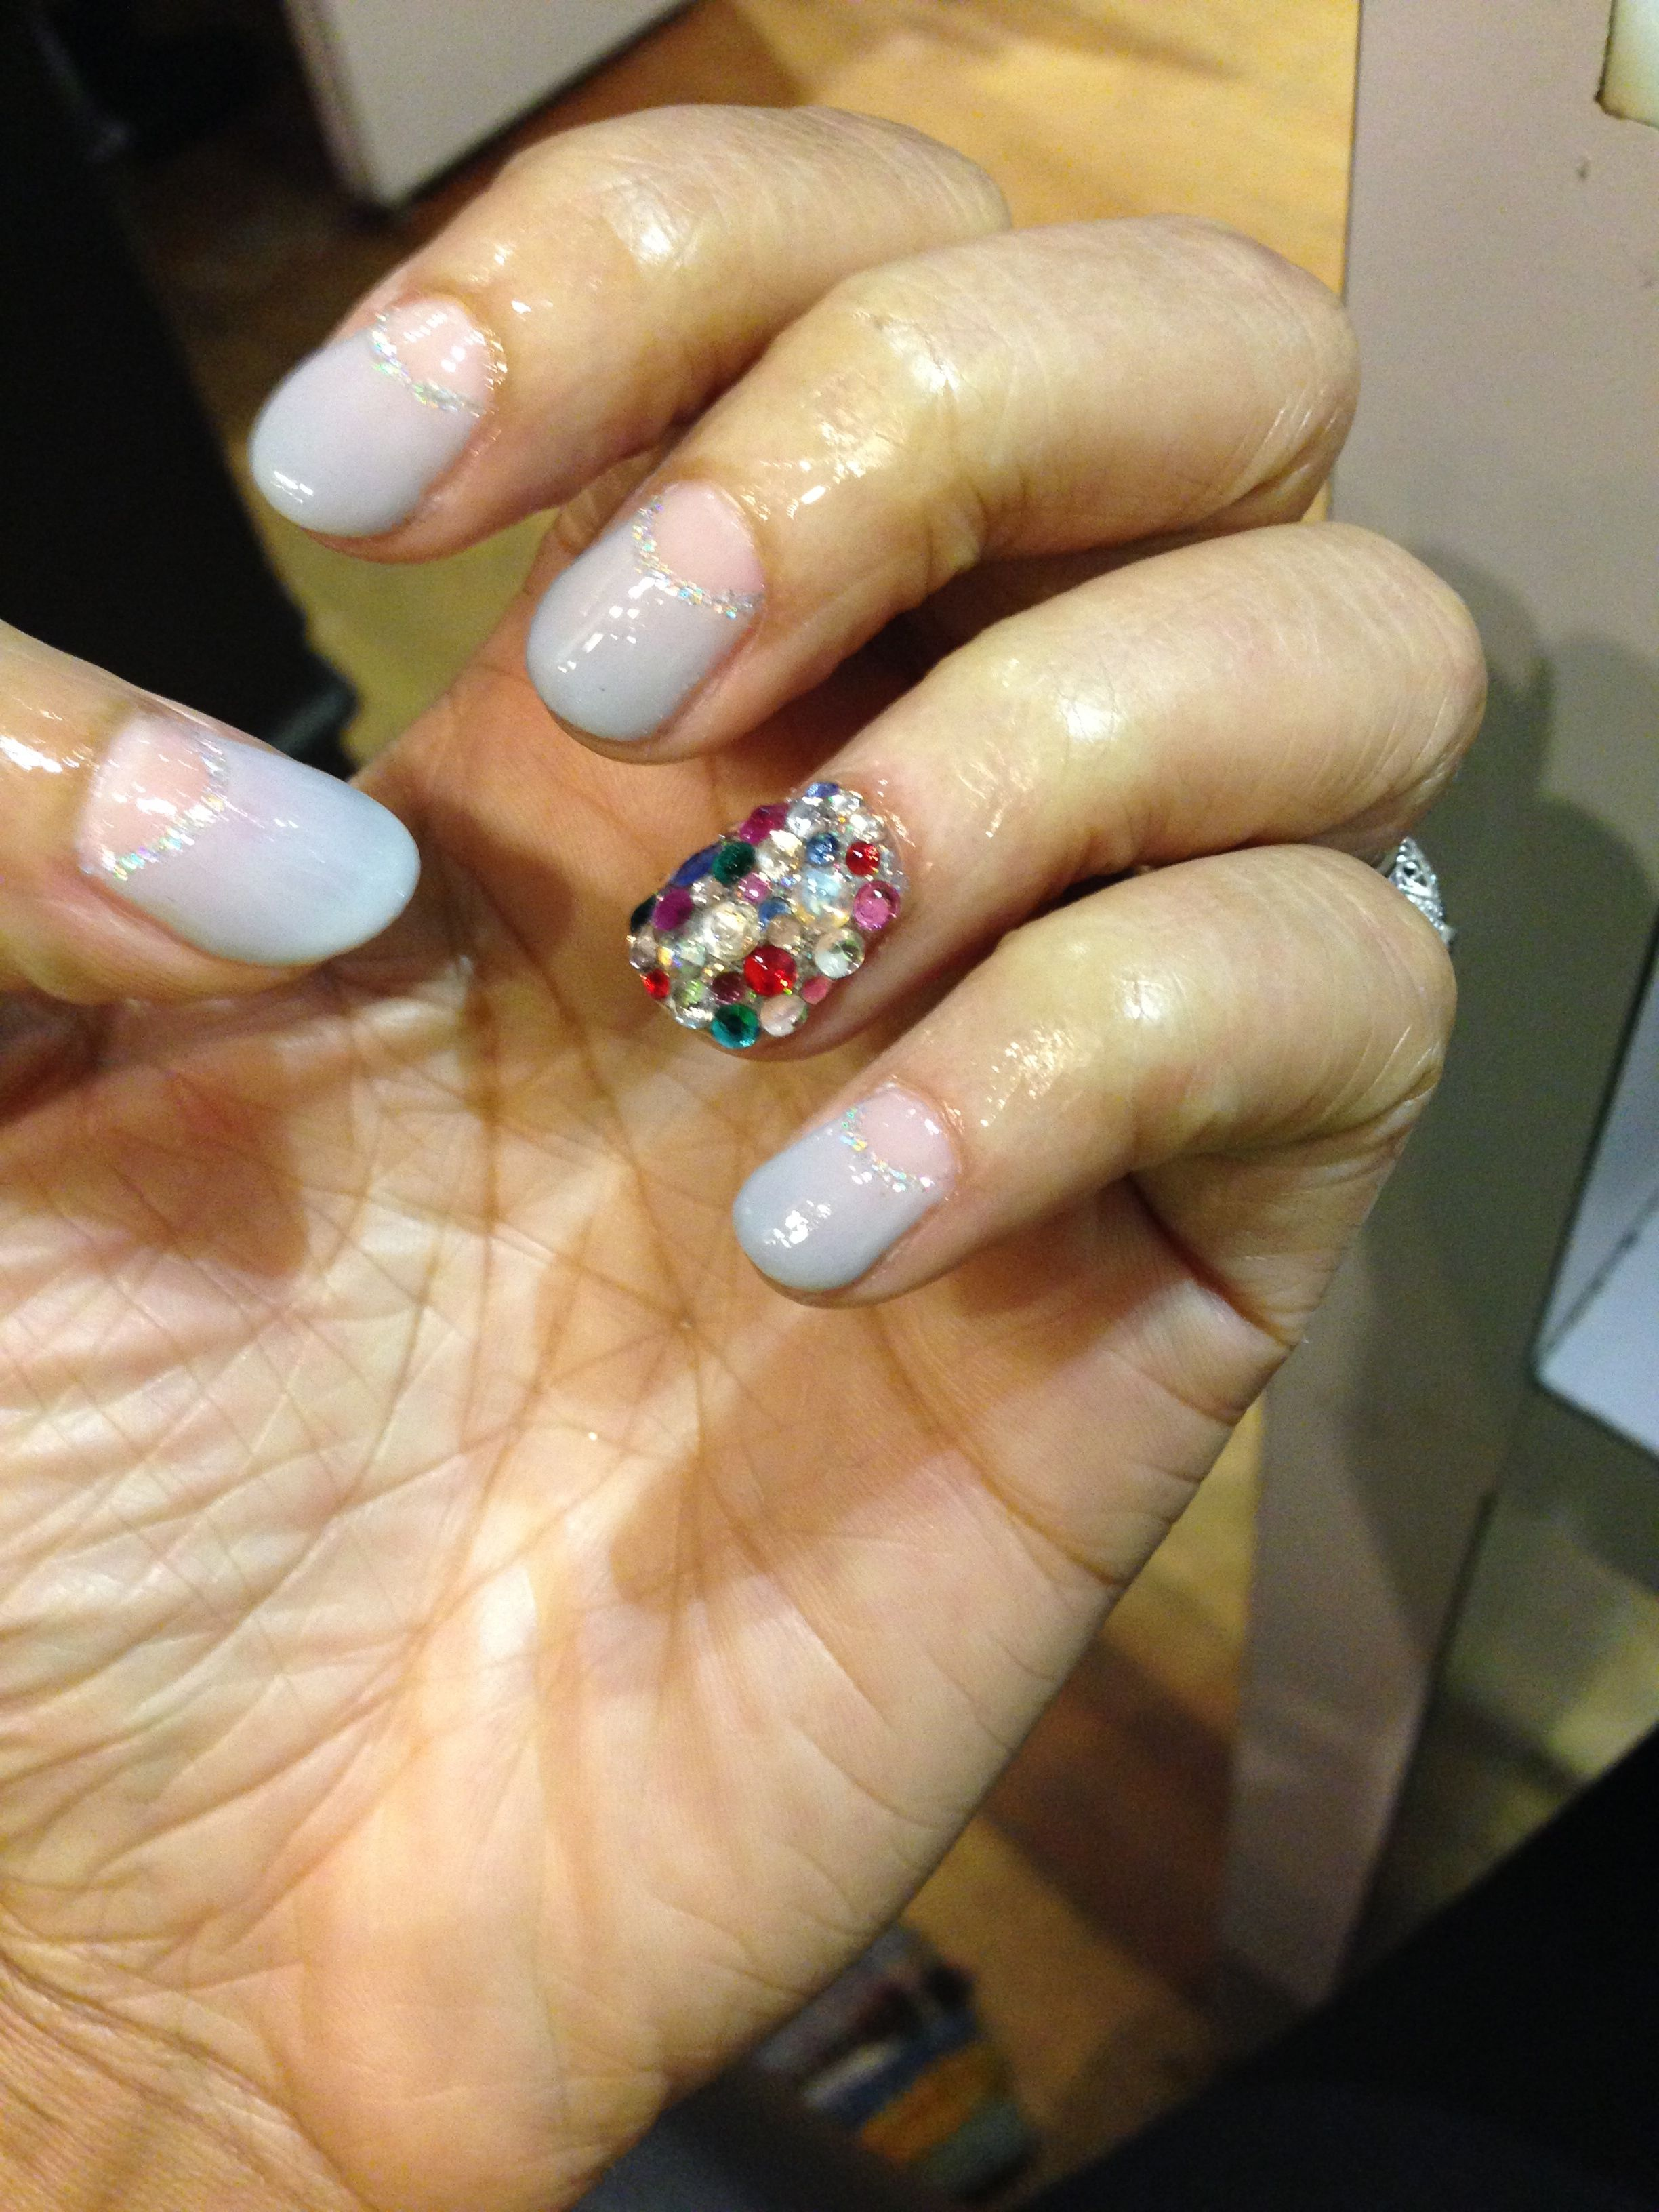 Calgel nails for one of my besties' weddings this past weekend -Oh My Nails! NYC